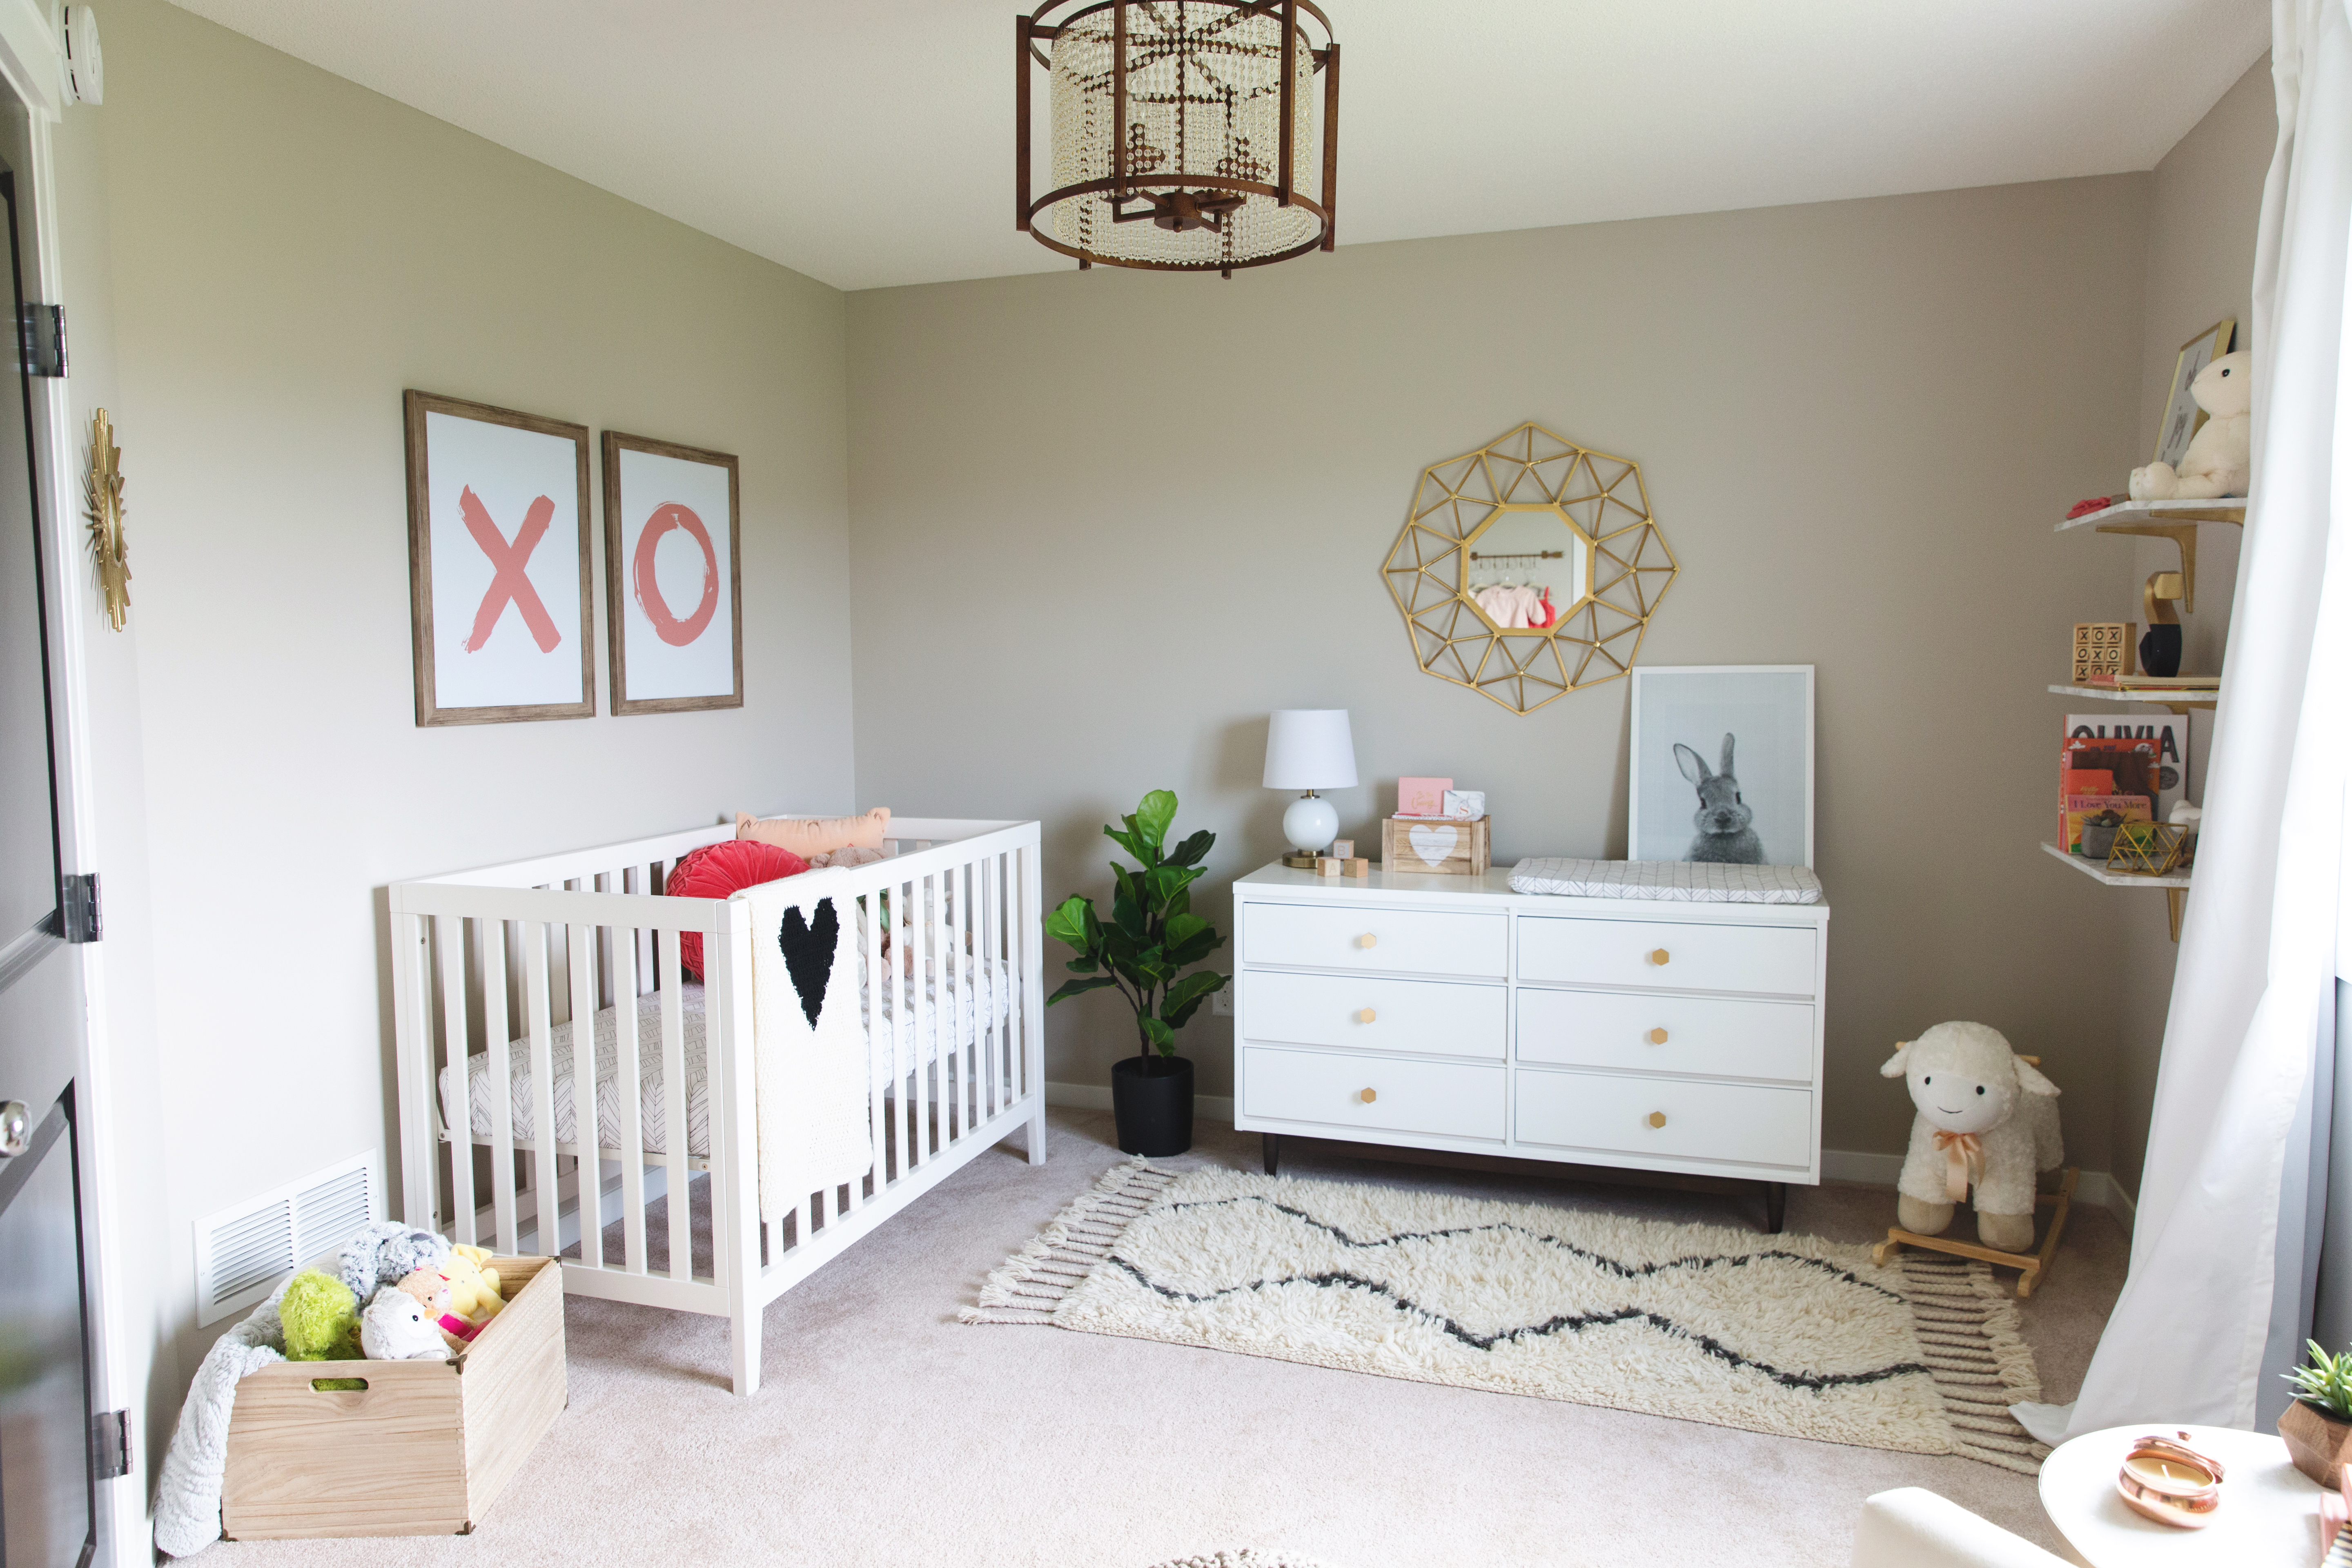 Baby Room Ideas and Children\u0027s Party Themes - Project Nursery